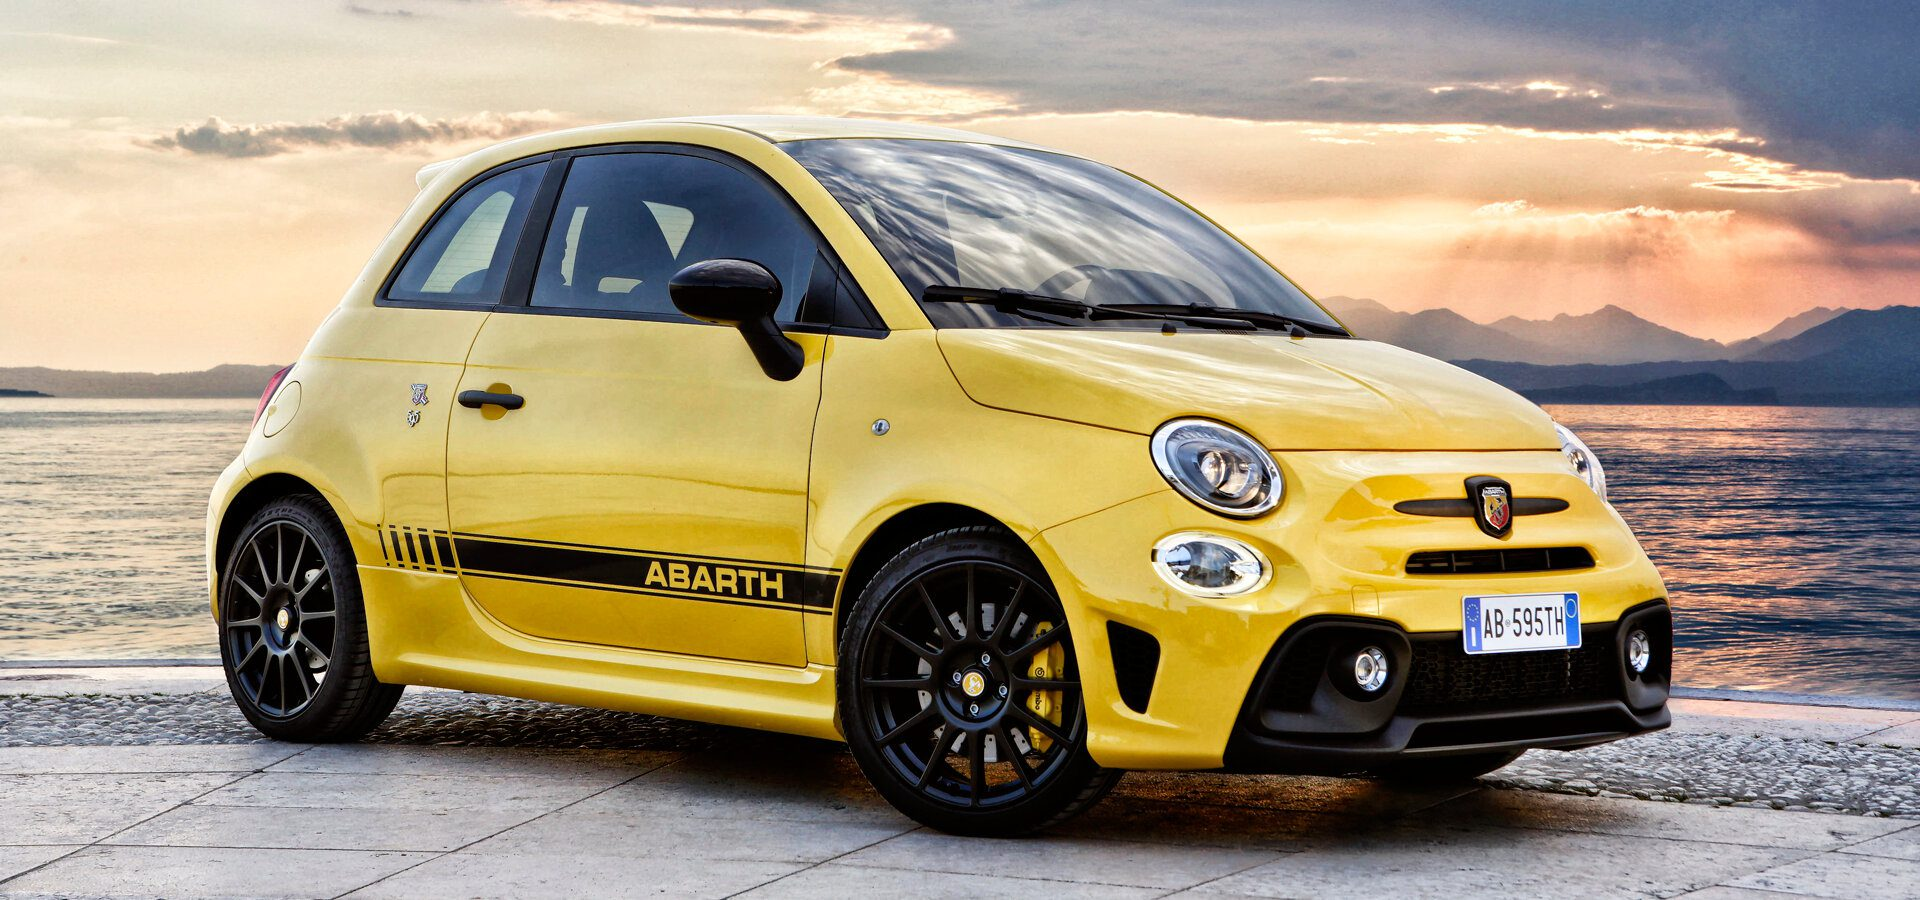 Abarth 595 - Amarillo, mar, puesta de sol